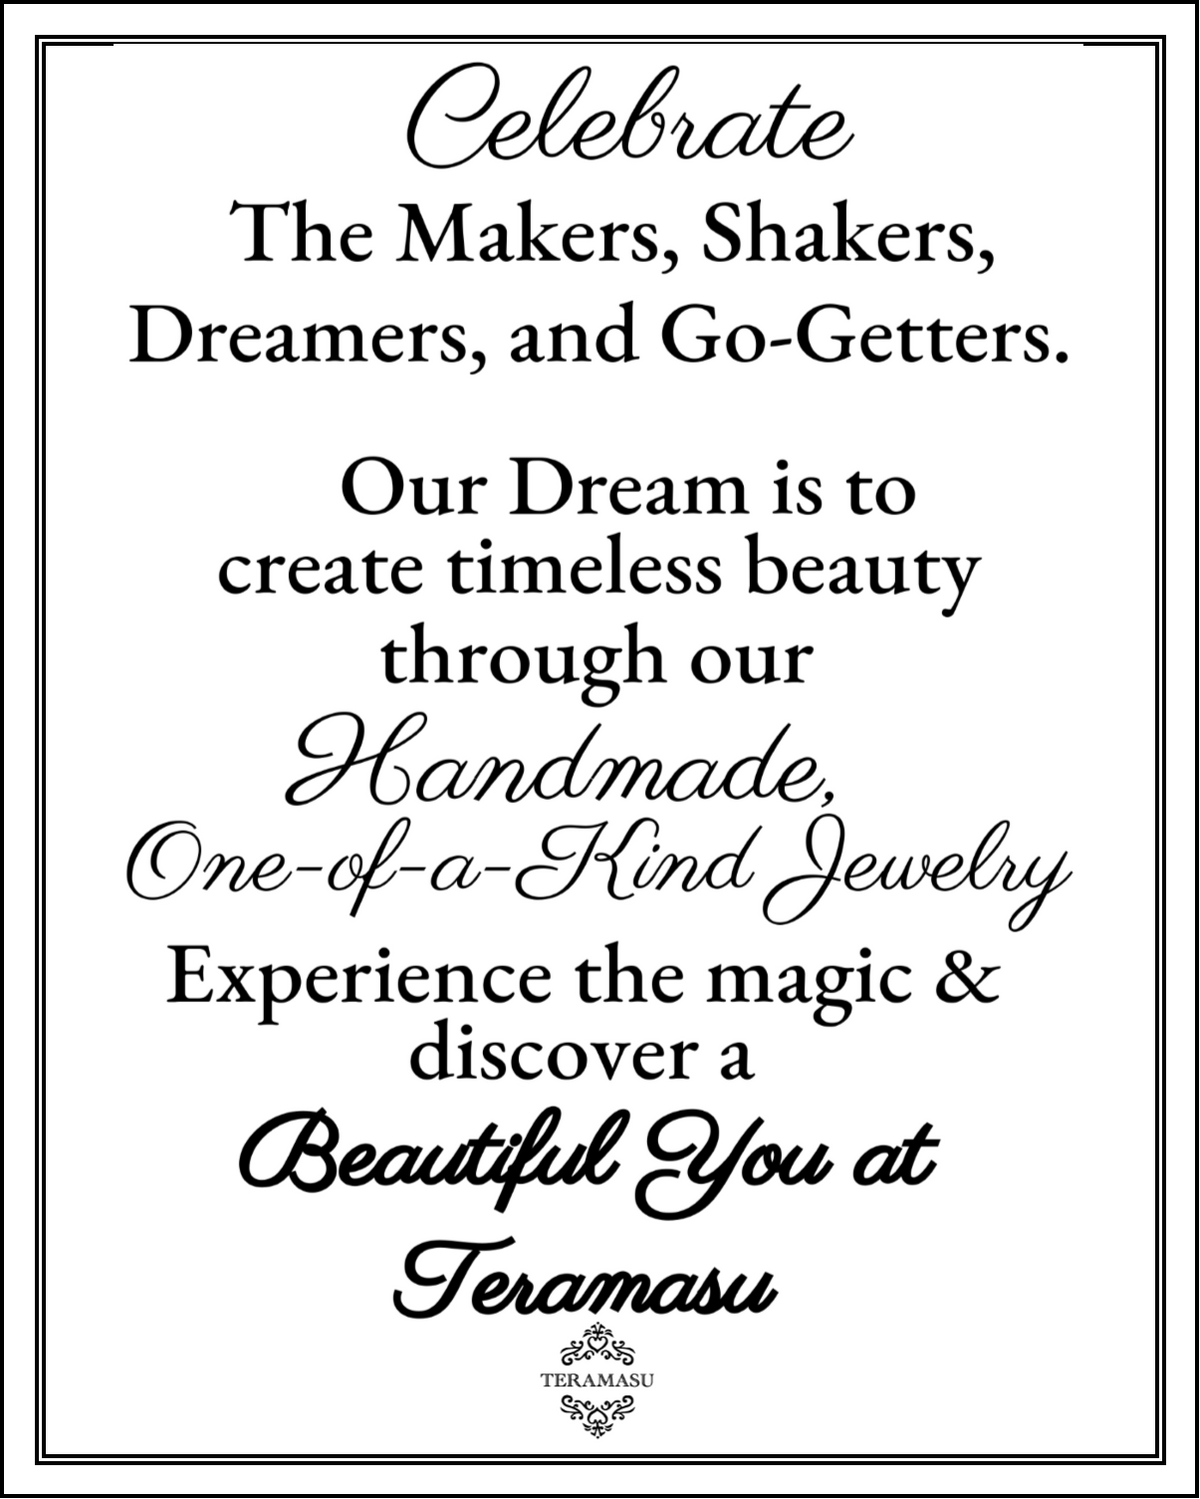 Celebrate the Makers & Discover a Beautiful You at Teramasu!